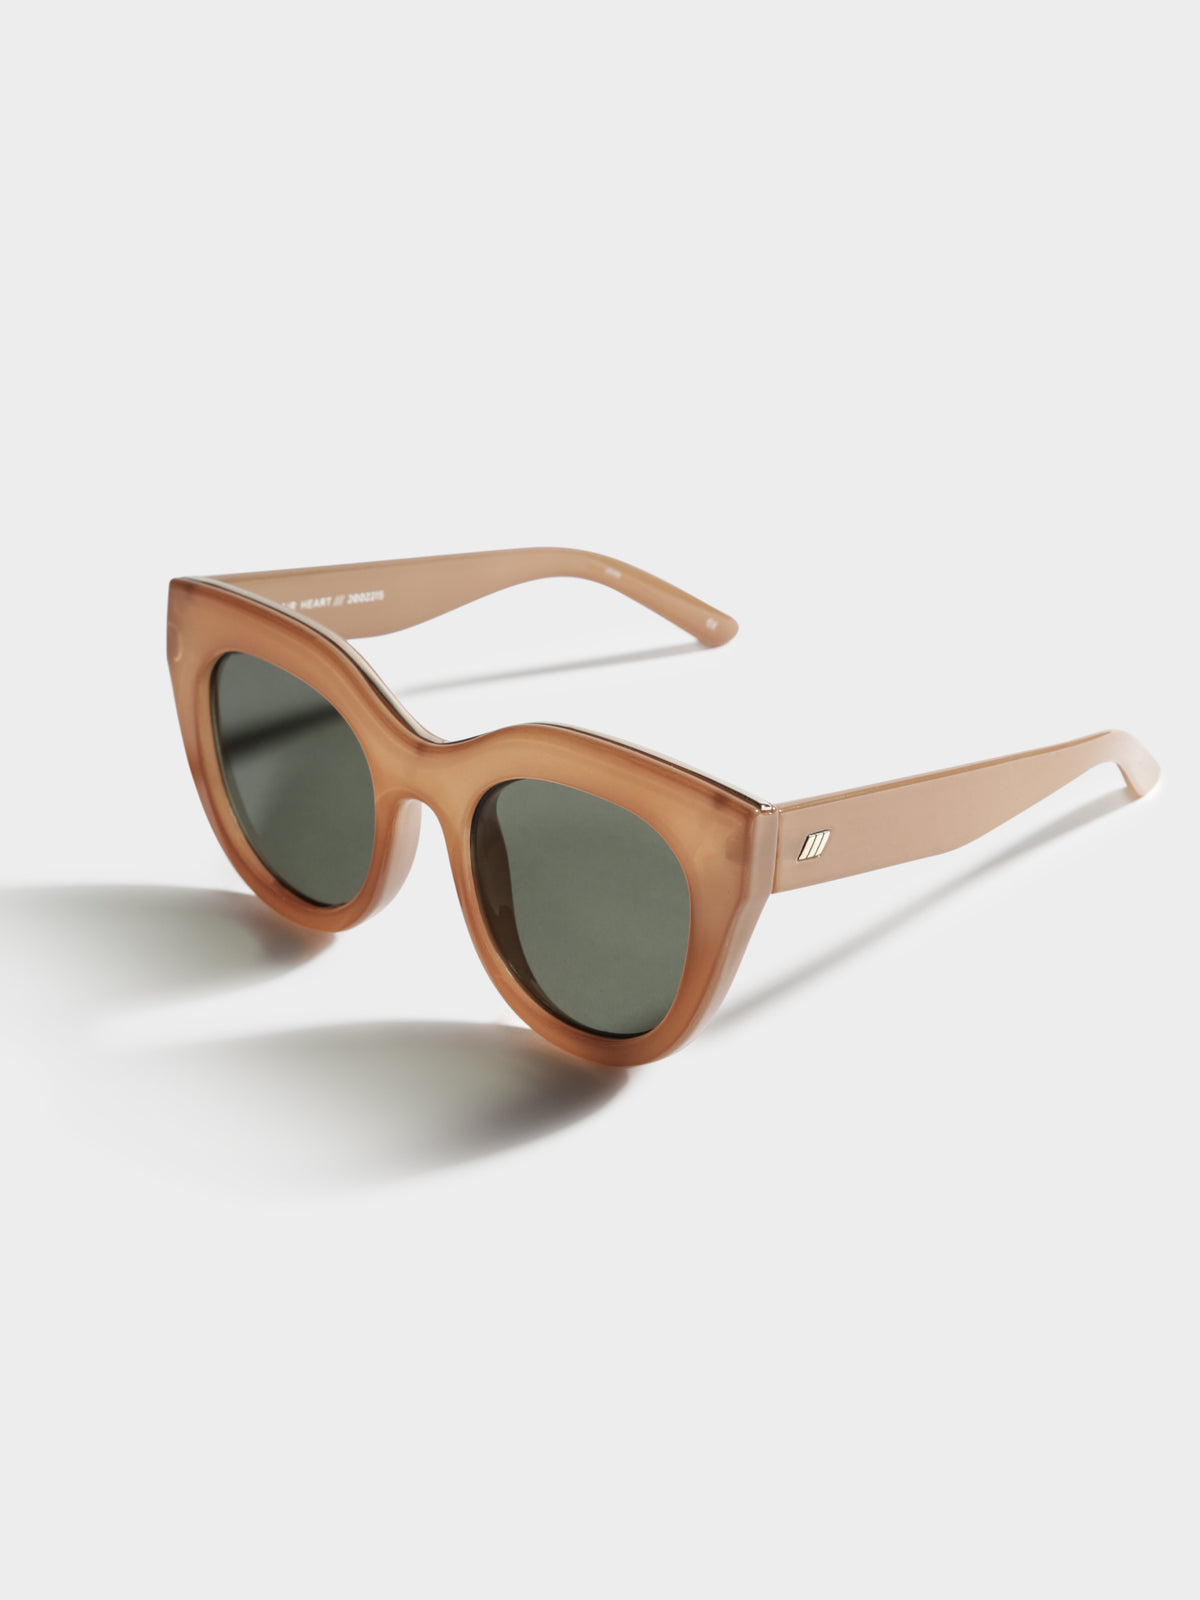 Air Heart Sunglasses in Caramel